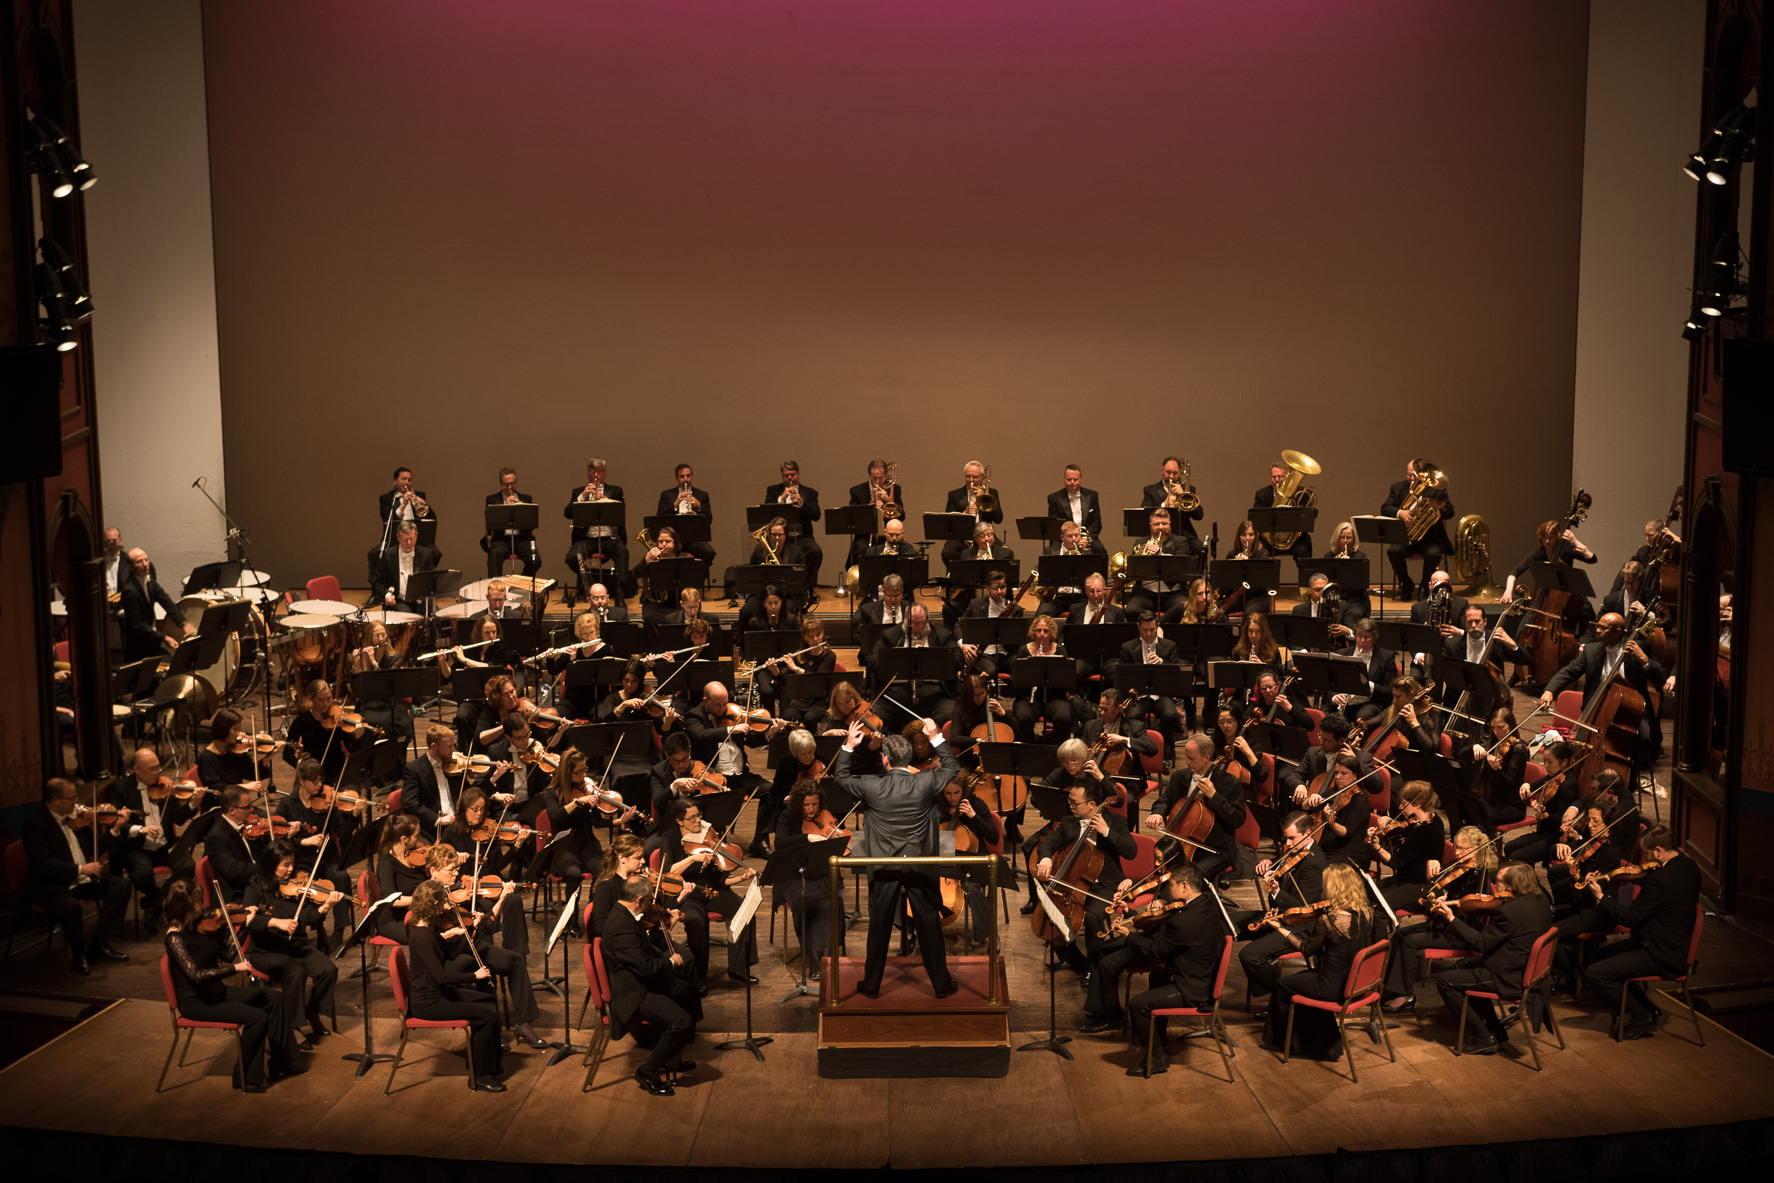 Delaware Symphony performs Mahler s underdog work that inspired its future director Arts & Entertainment WHYY